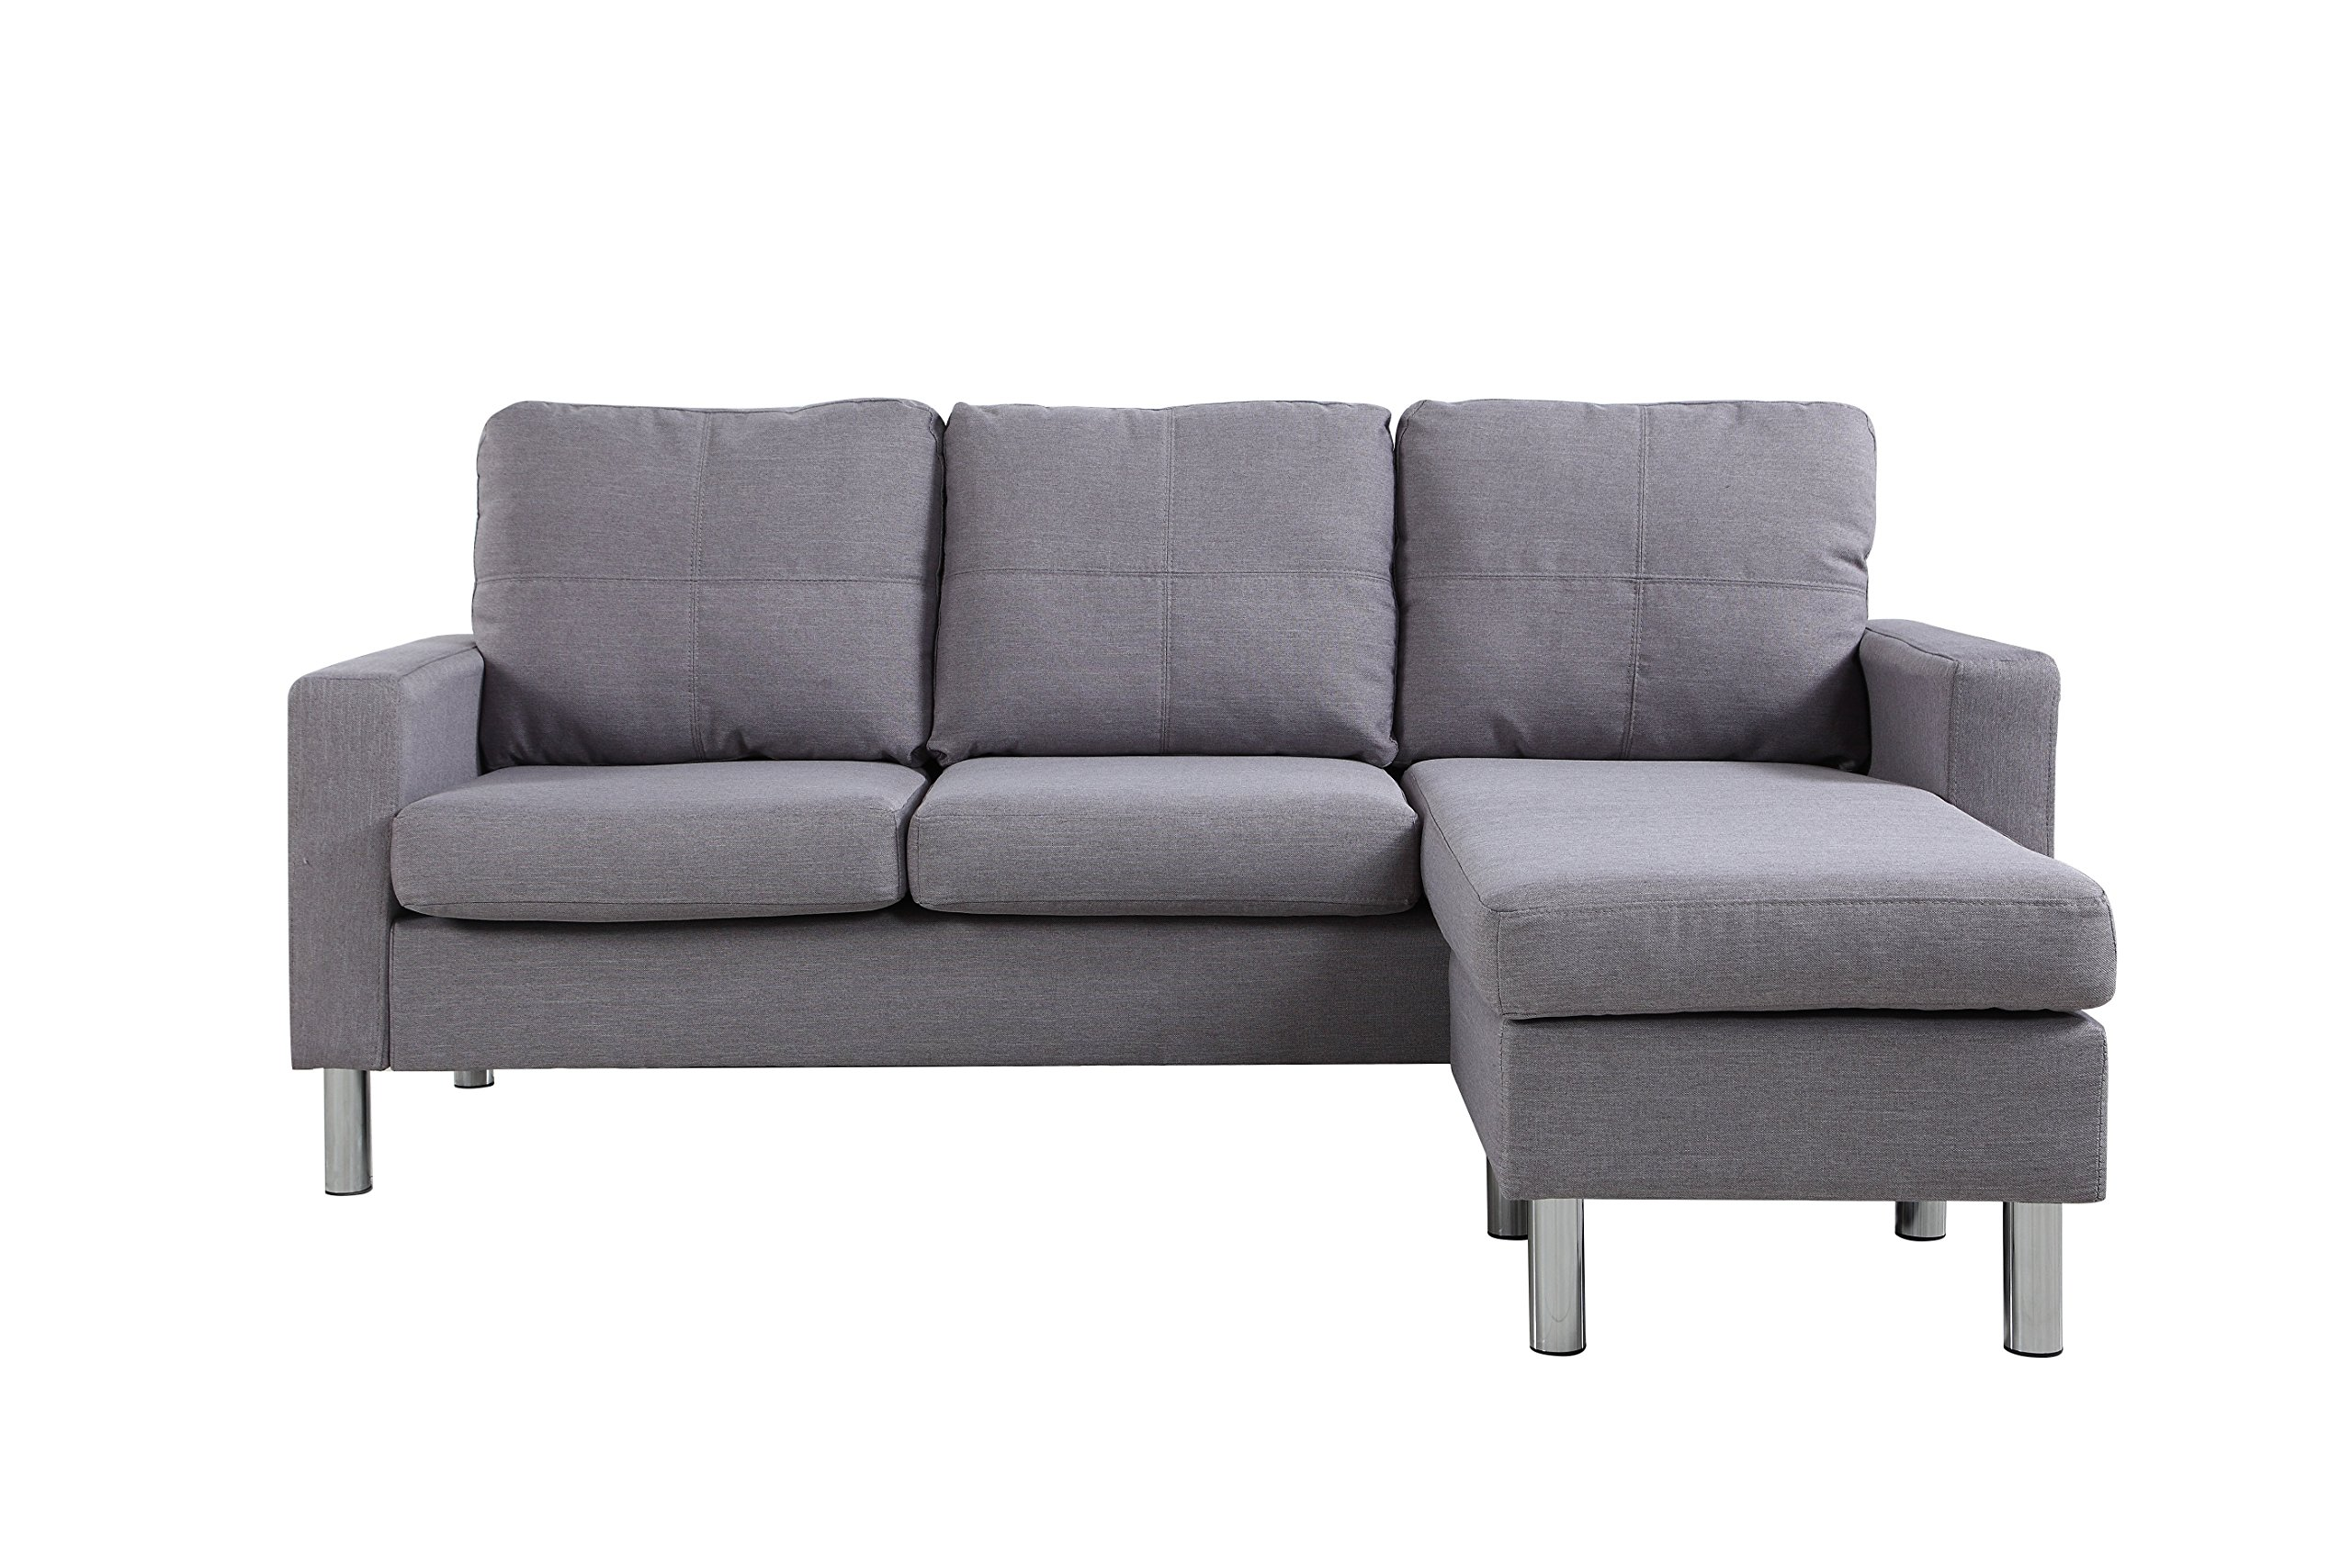 Moderne Livinf EXP16-LGR Modern Living Reversible Linen Fabric Sectional Sofa, Light Grey -  - sofas-couches, living-room-furniture, living-room - 81CtP7e2JqL -